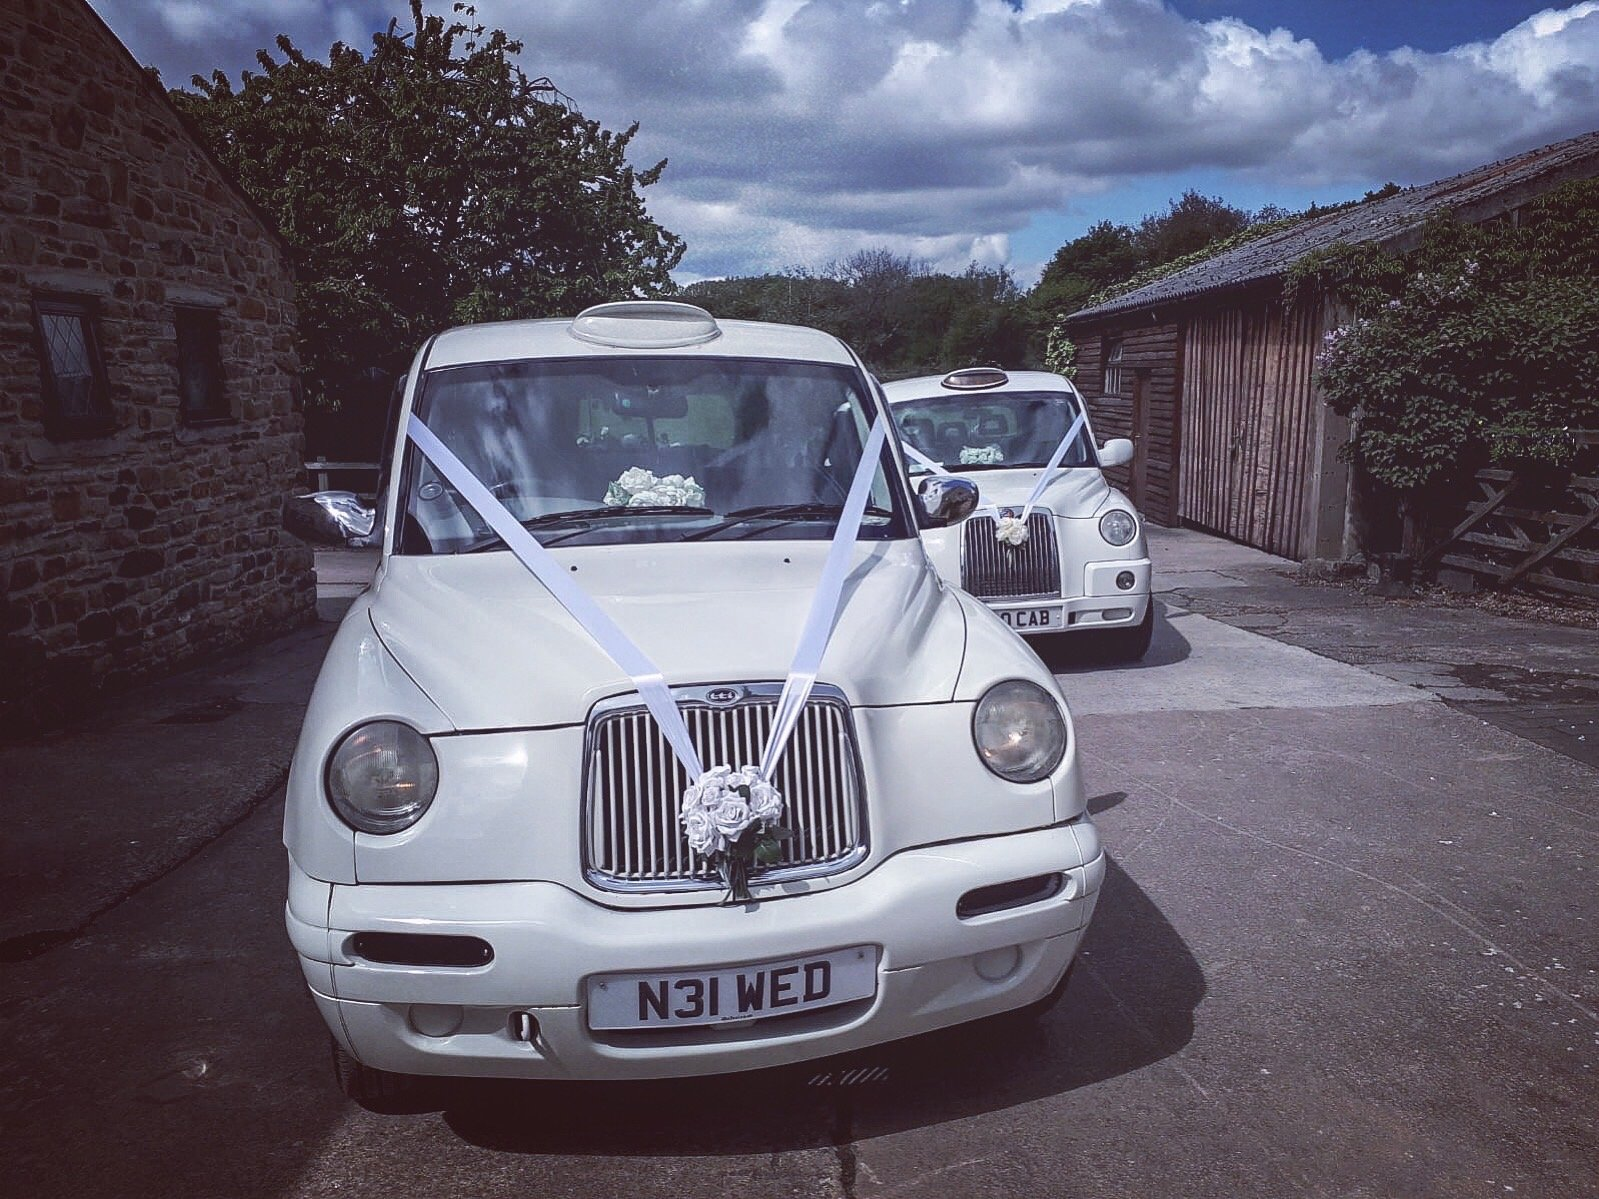 Romiley stockport wedding cars taxis